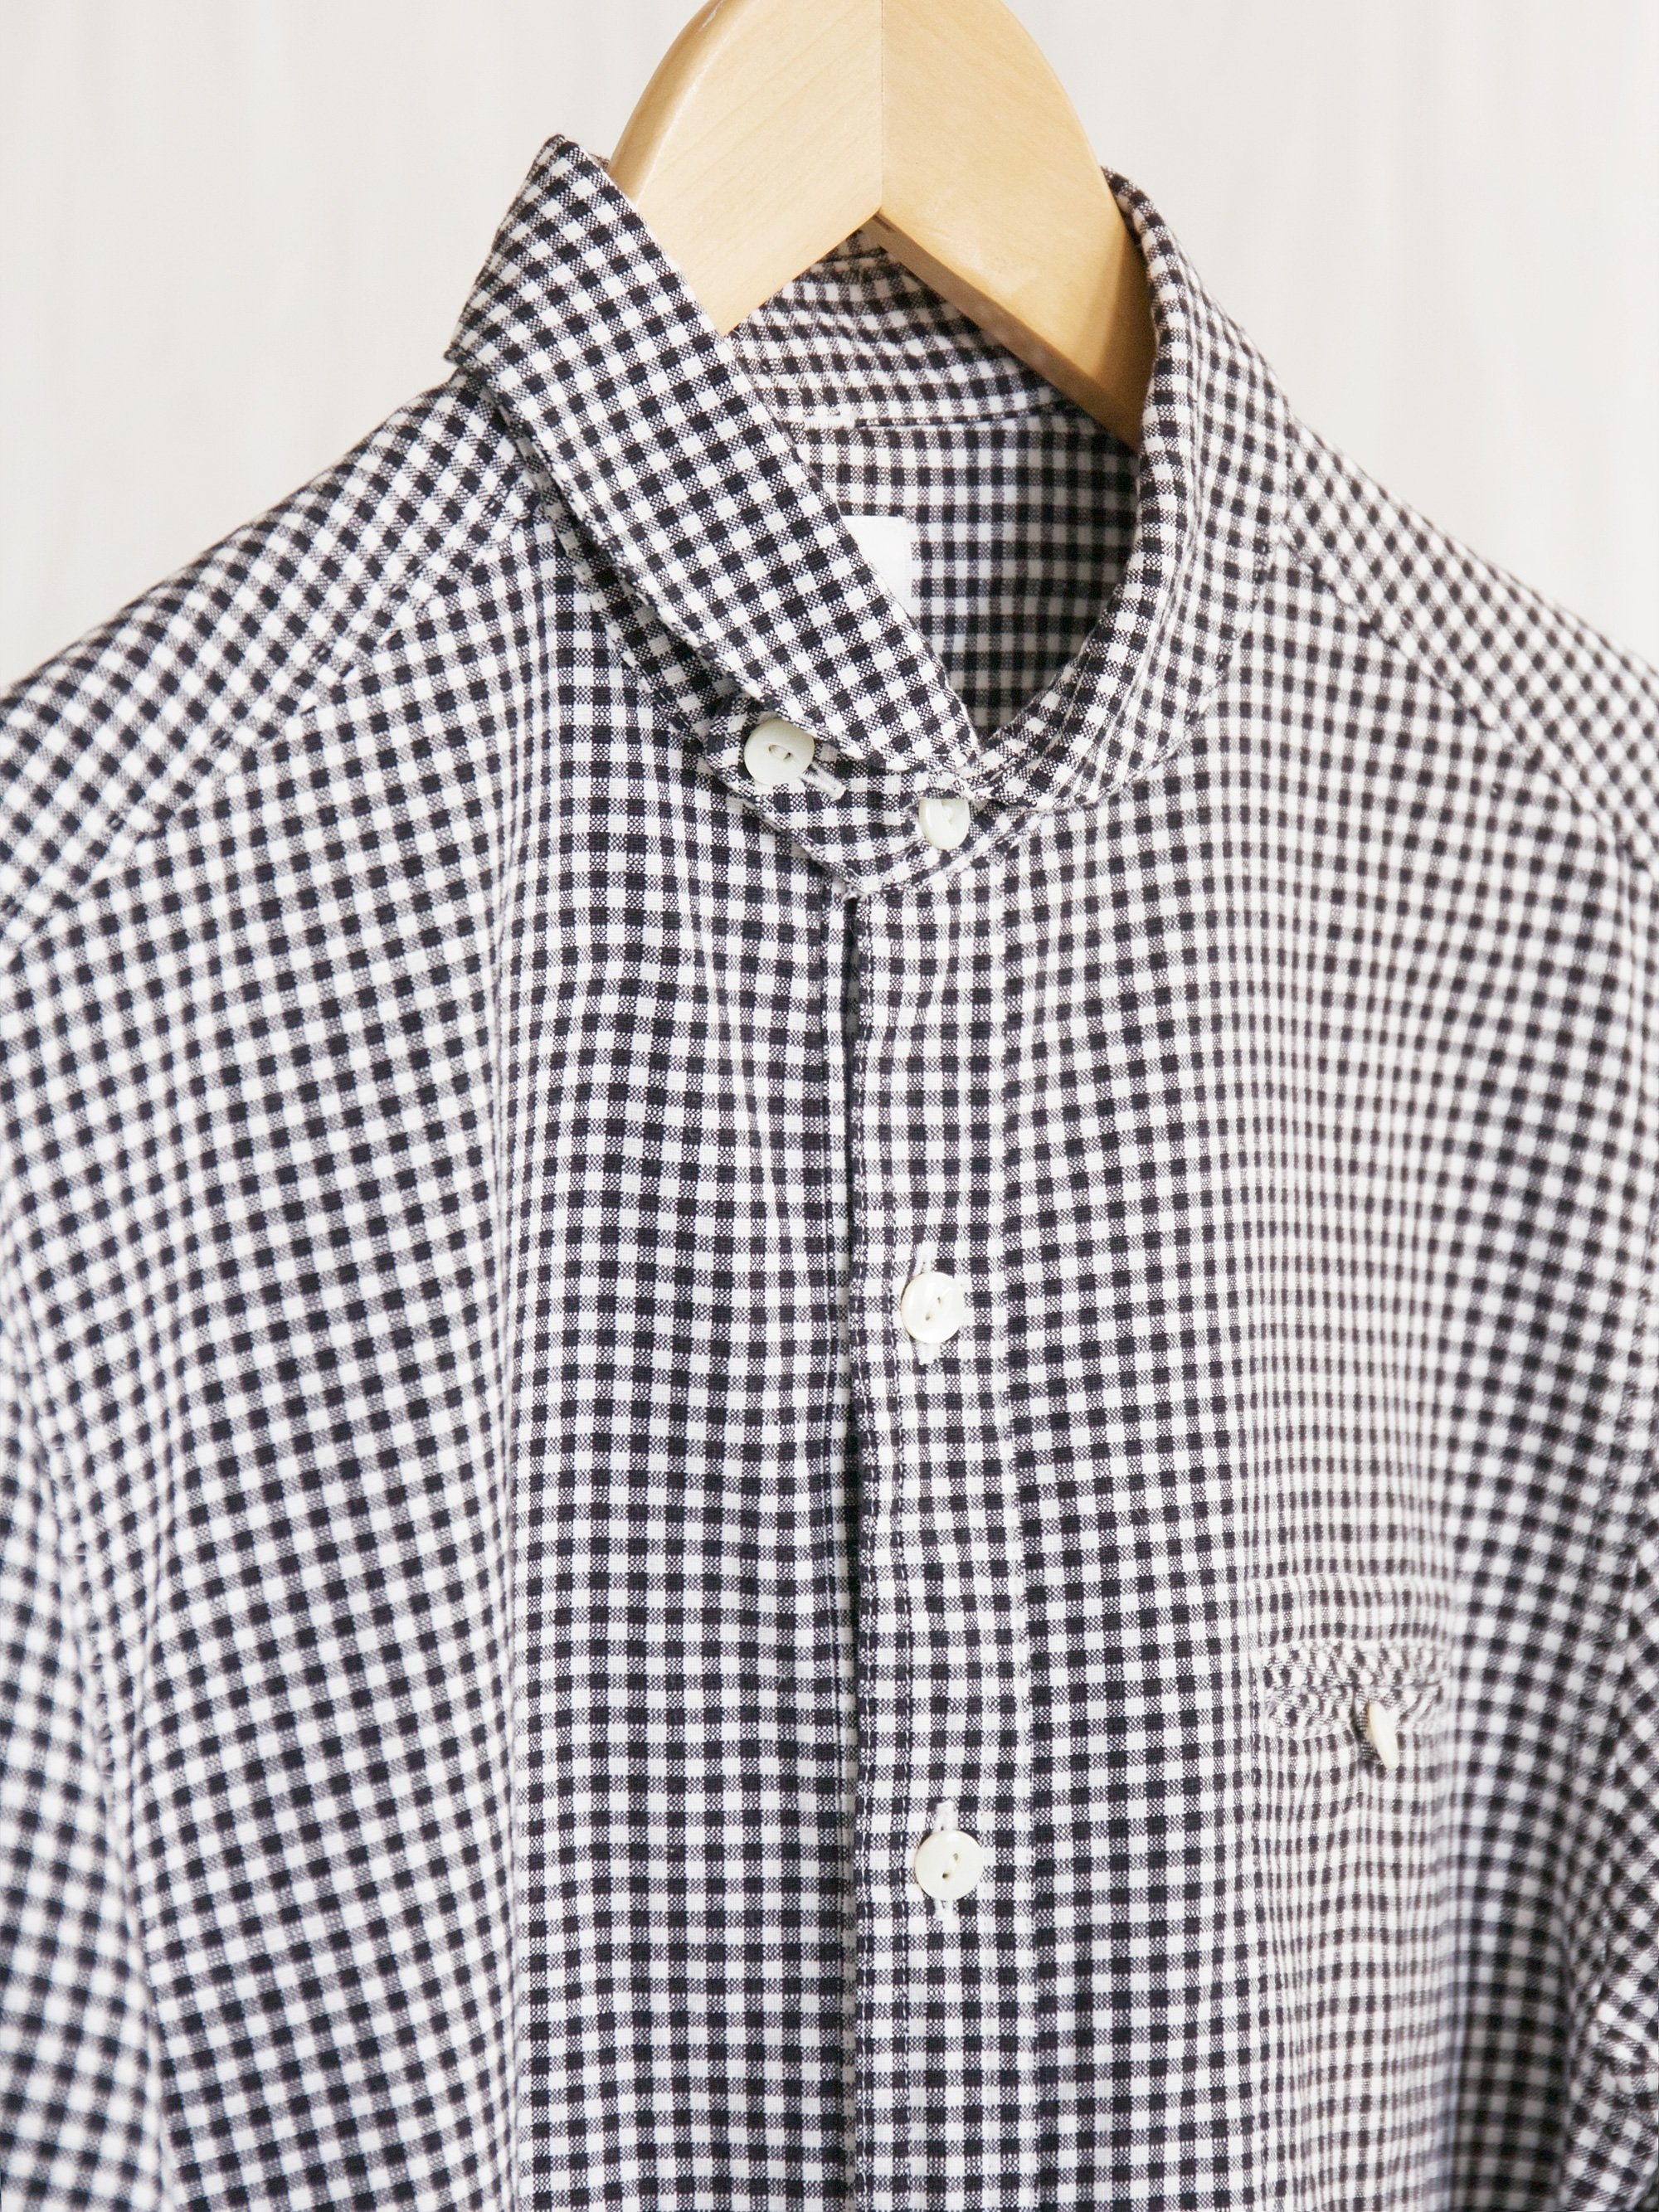 Namu Shop - Maillot Sunset Gingham Work Shirt - Black